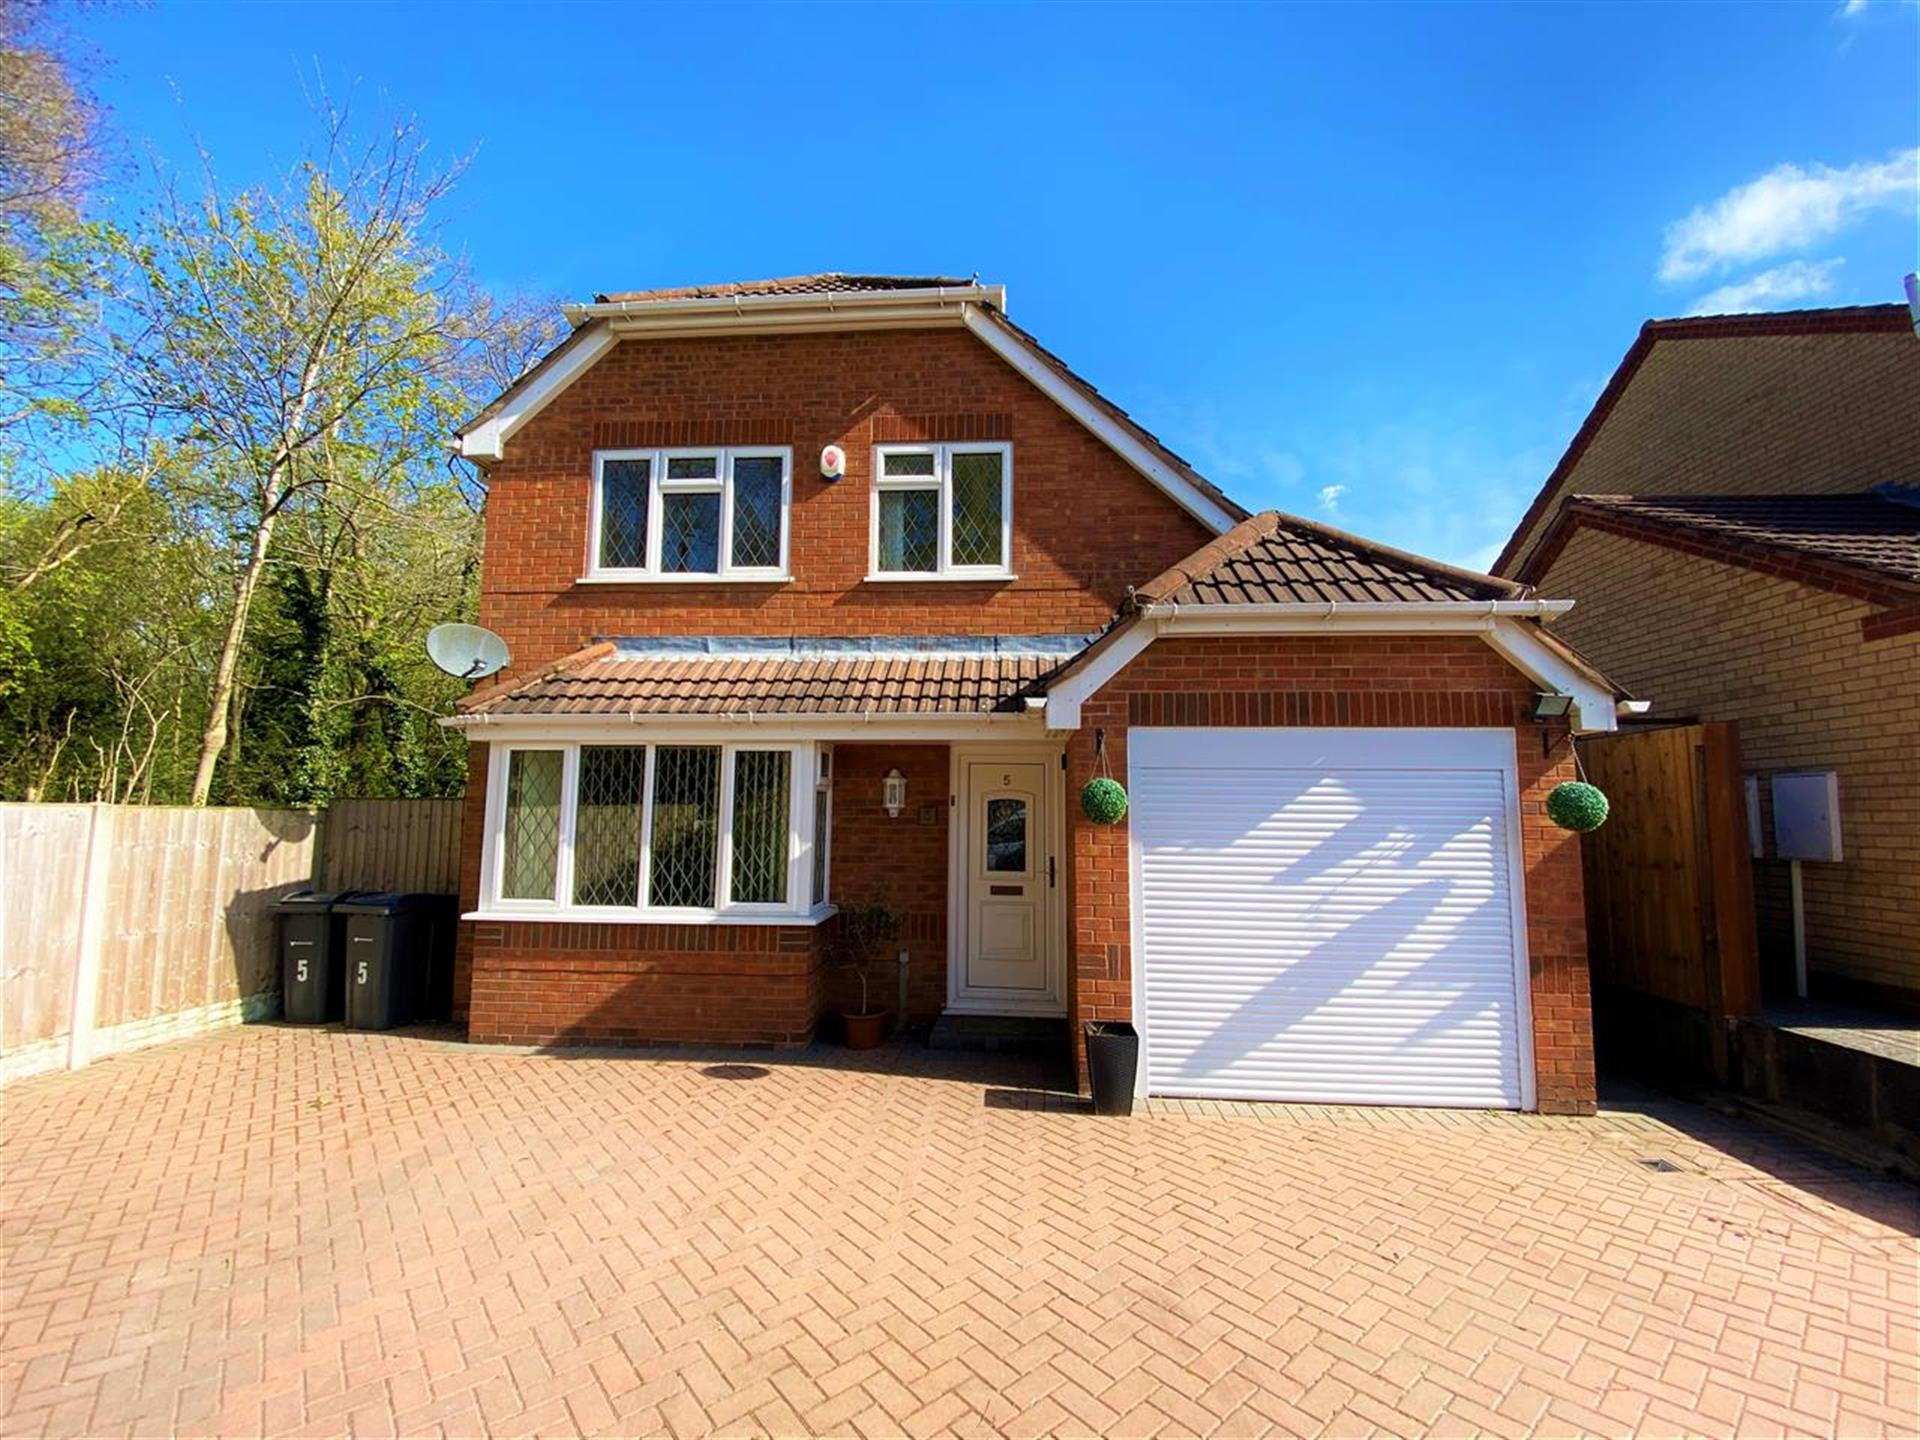 3 Bedroom Detached House To Rent - Main Picture